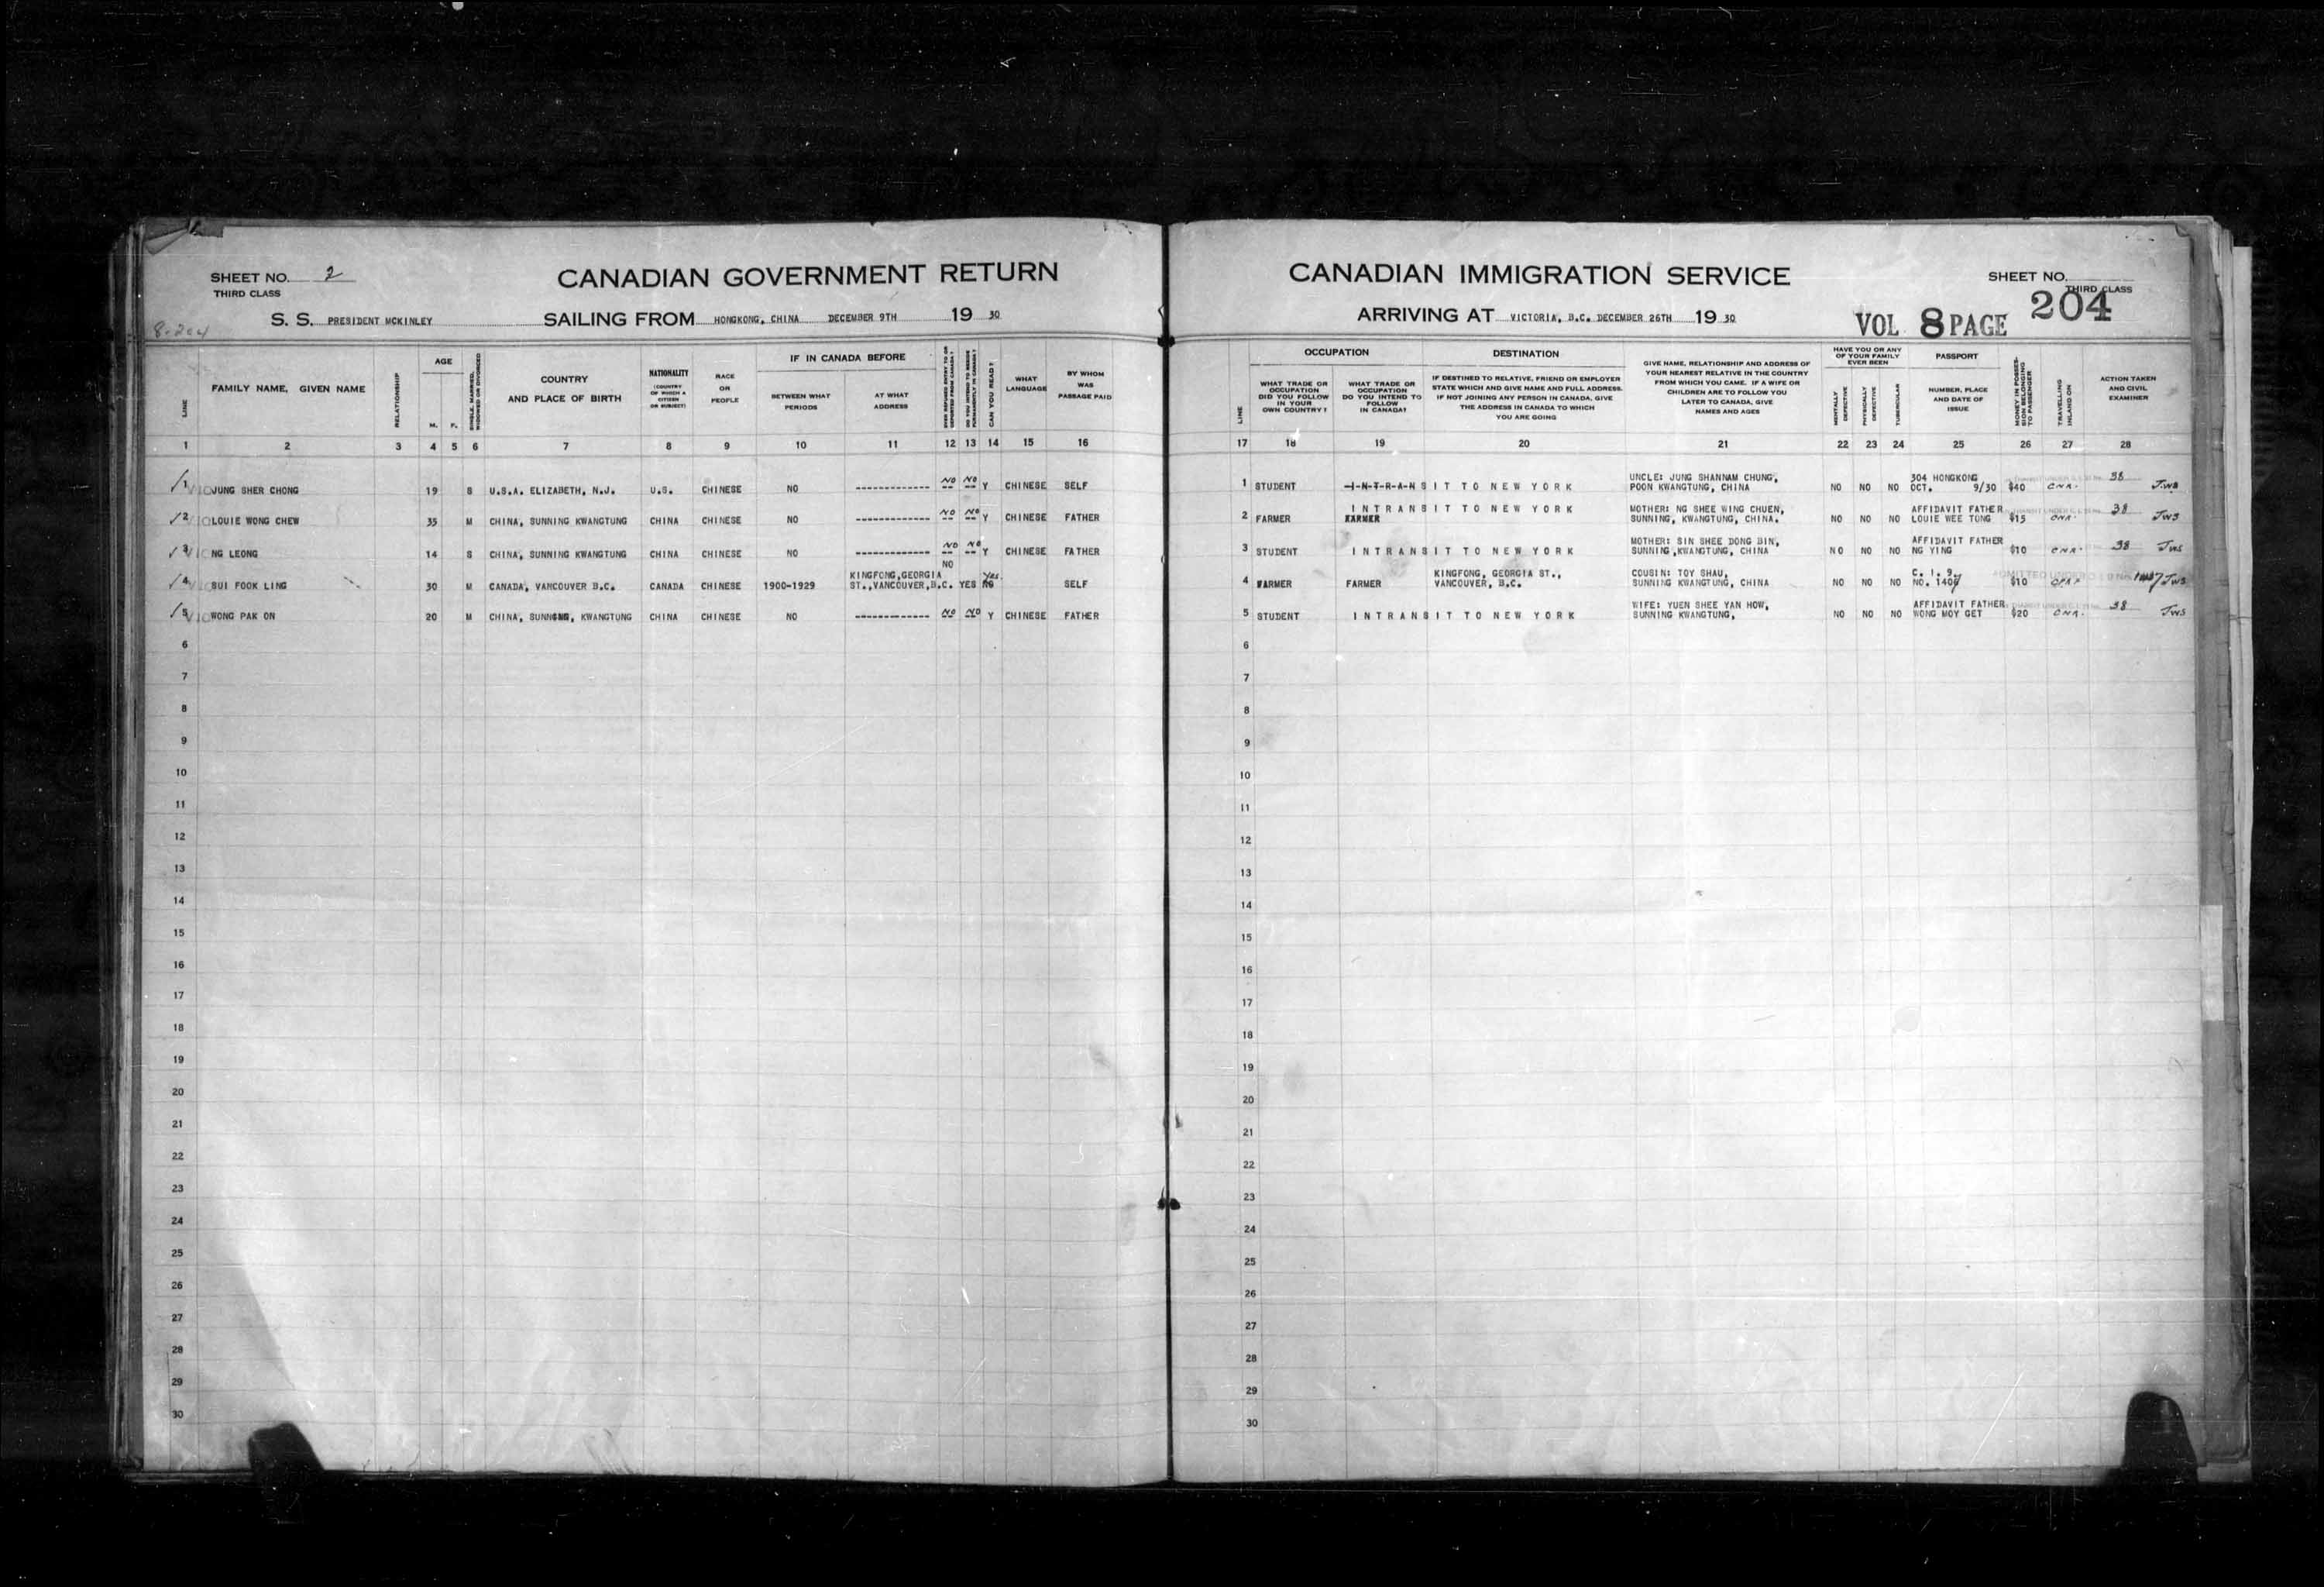 Title: Passenger Lists: Vancouver and Victoria (1925-1935) - Mikan Number: 161347 - Microform: t-14898